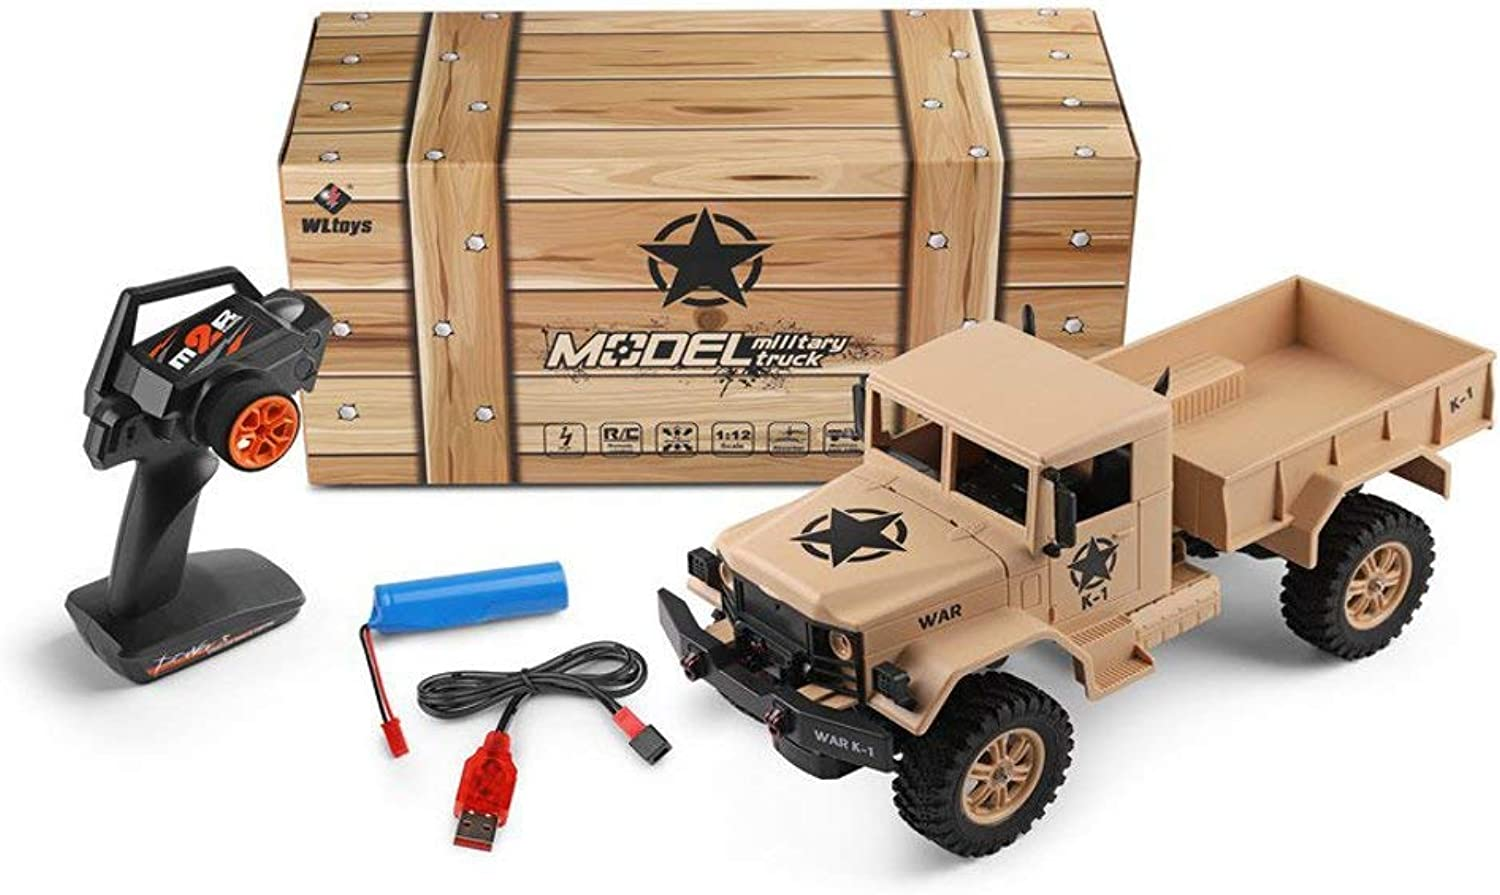 HUAXING 2019 New 1 12 2.4G 4WD 15km h 45cm Rc Car 4.5kg Load Offroad Military Truck RTR Toy Viehicle Kids Gift,Yellow